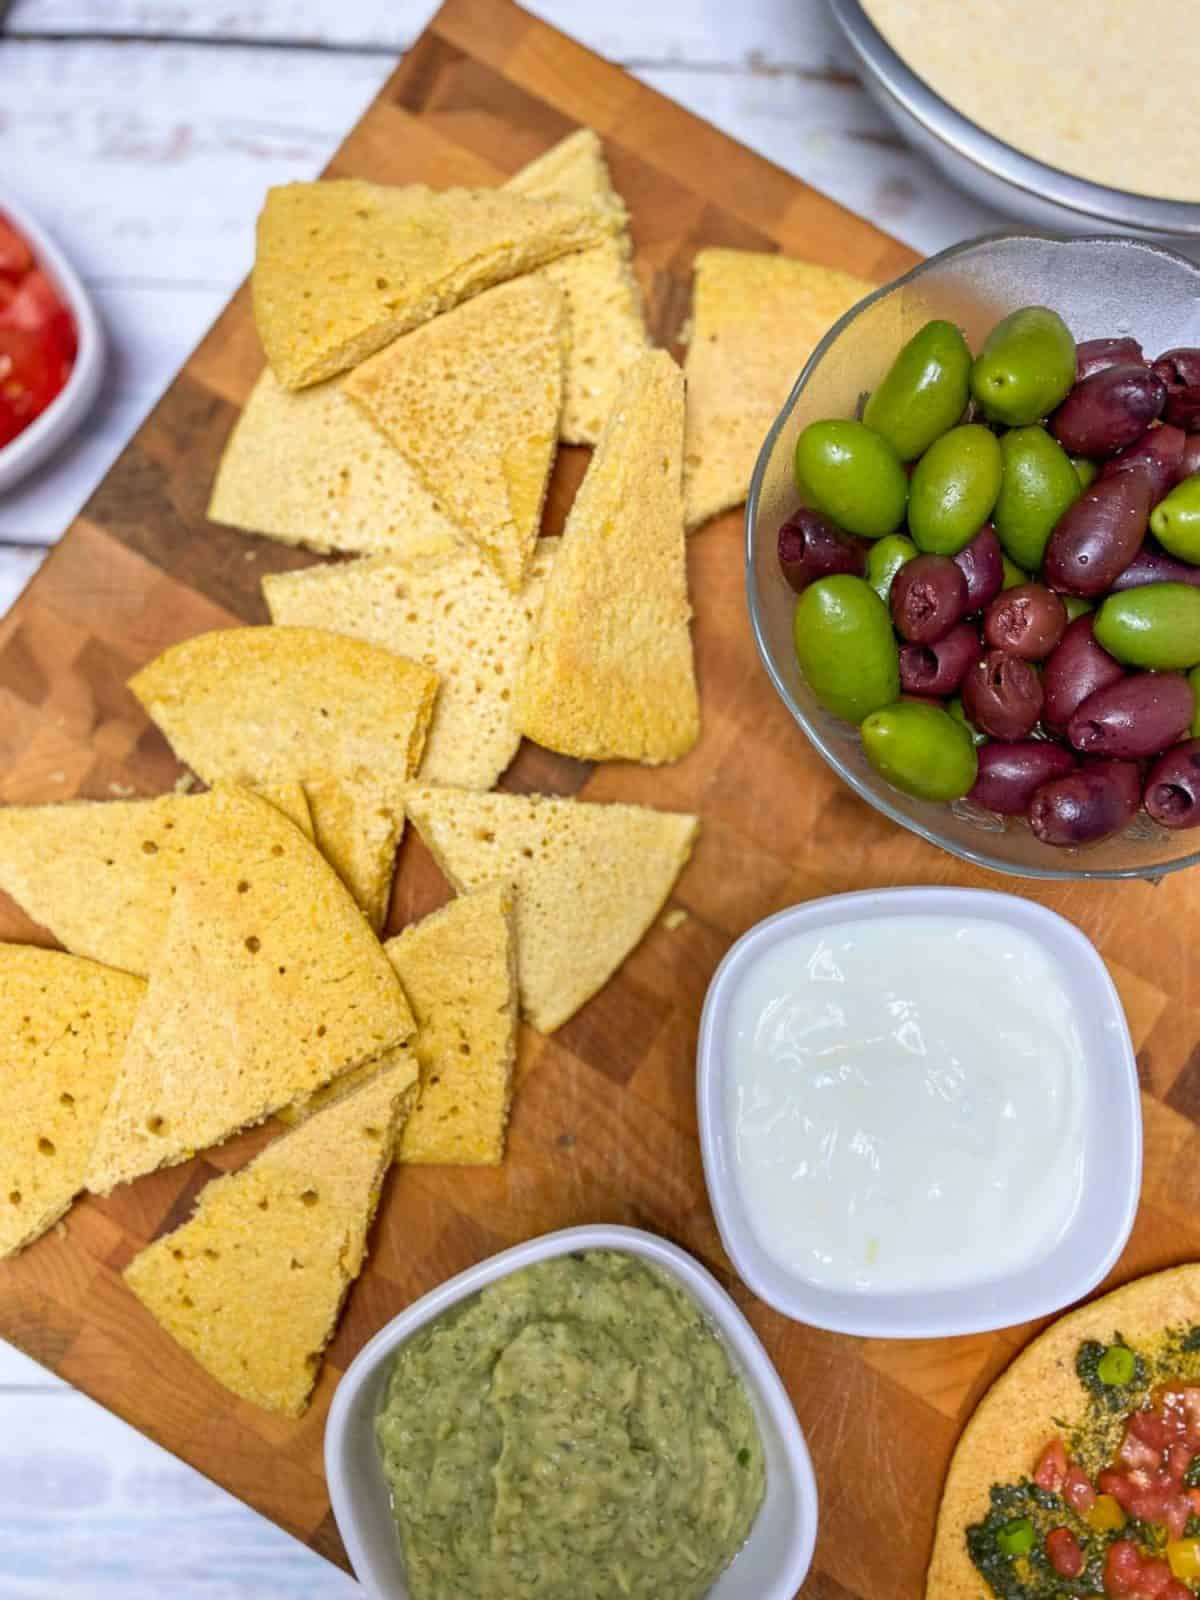 triangular wedges of socca on cutting board with bowl of olives and dips